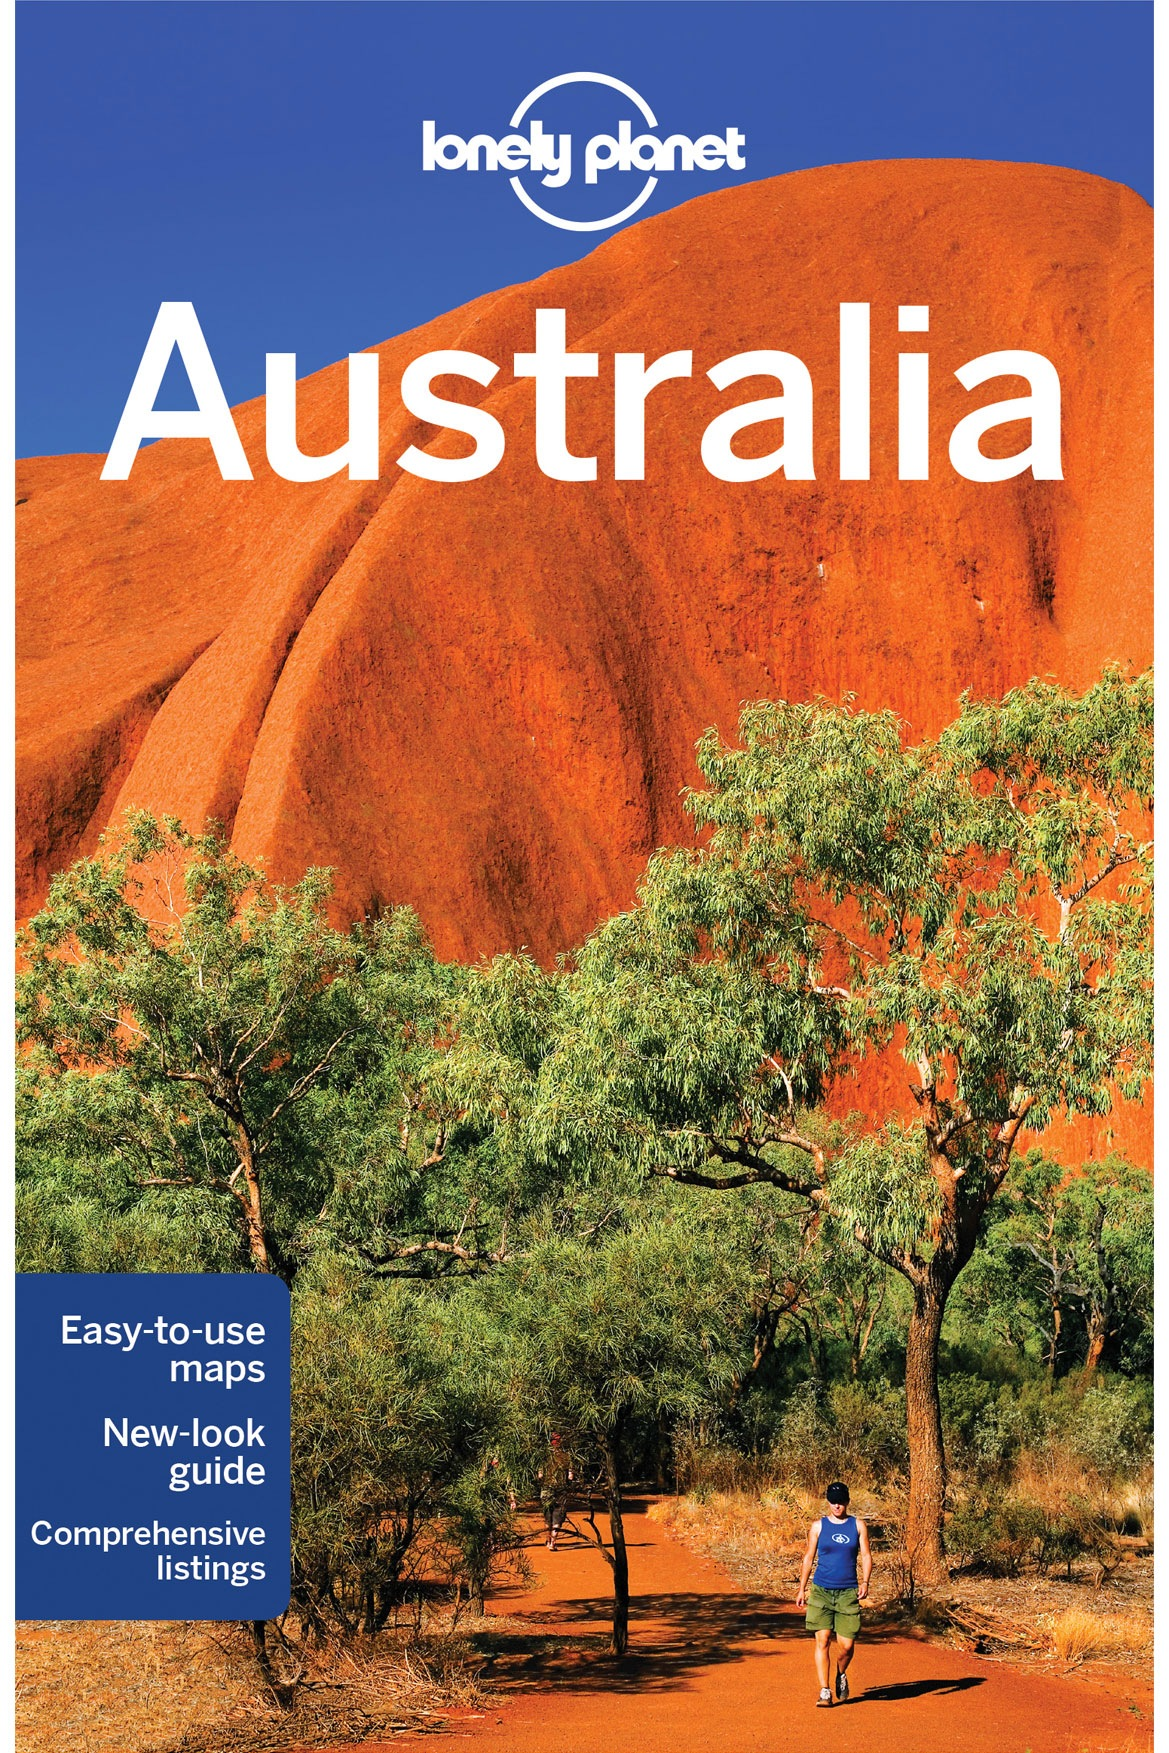 lonely planet australia travel guide 18th edition paperback rh myer com au lonely planet australia travel guide pdf Natalie Tran Lonely Planet